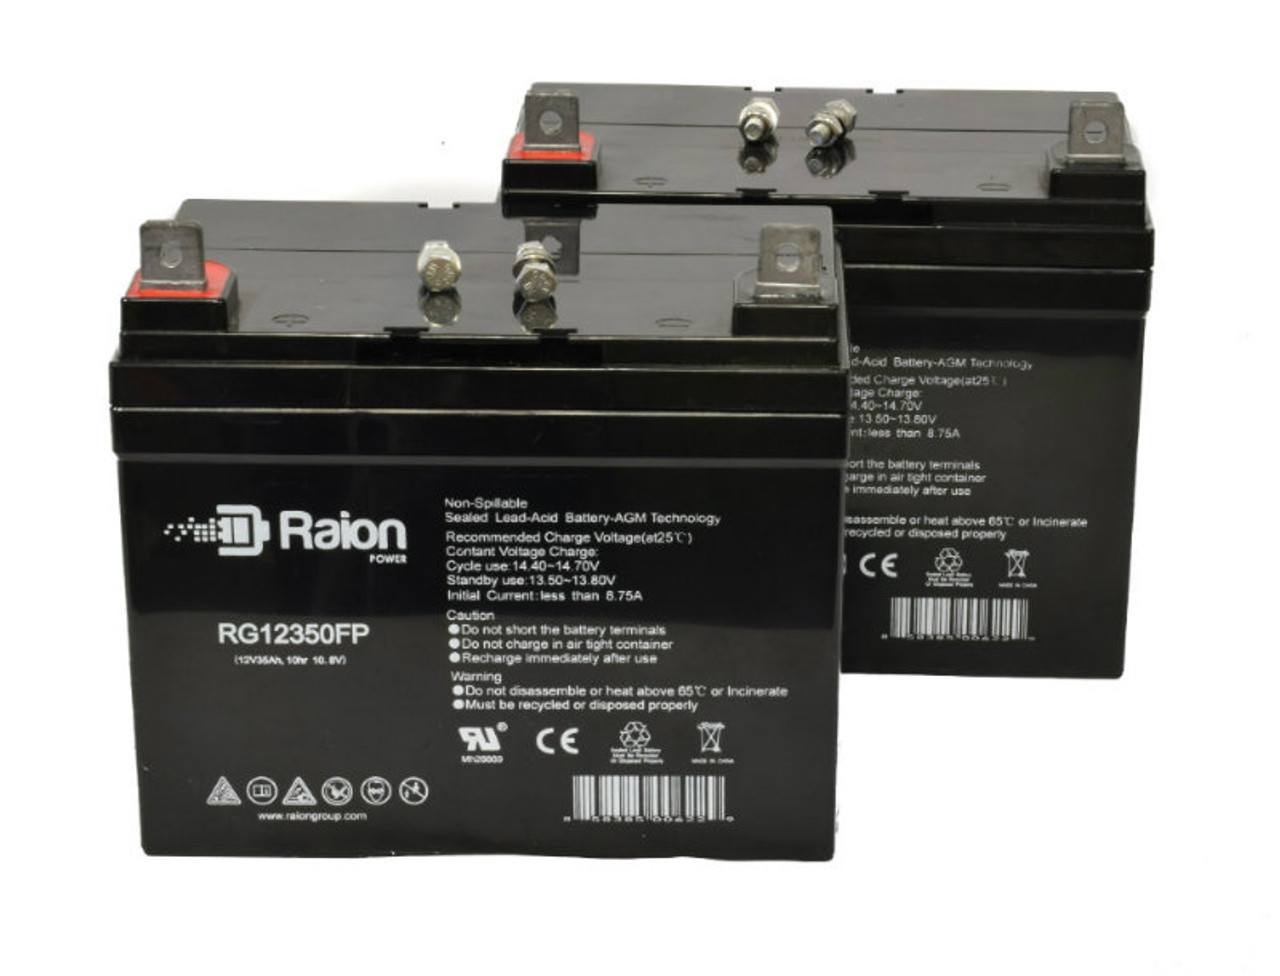 Raion Power RG12350FP Replacement Wheelchair Battery For Stand-Aid Power Lift (2 Pack)